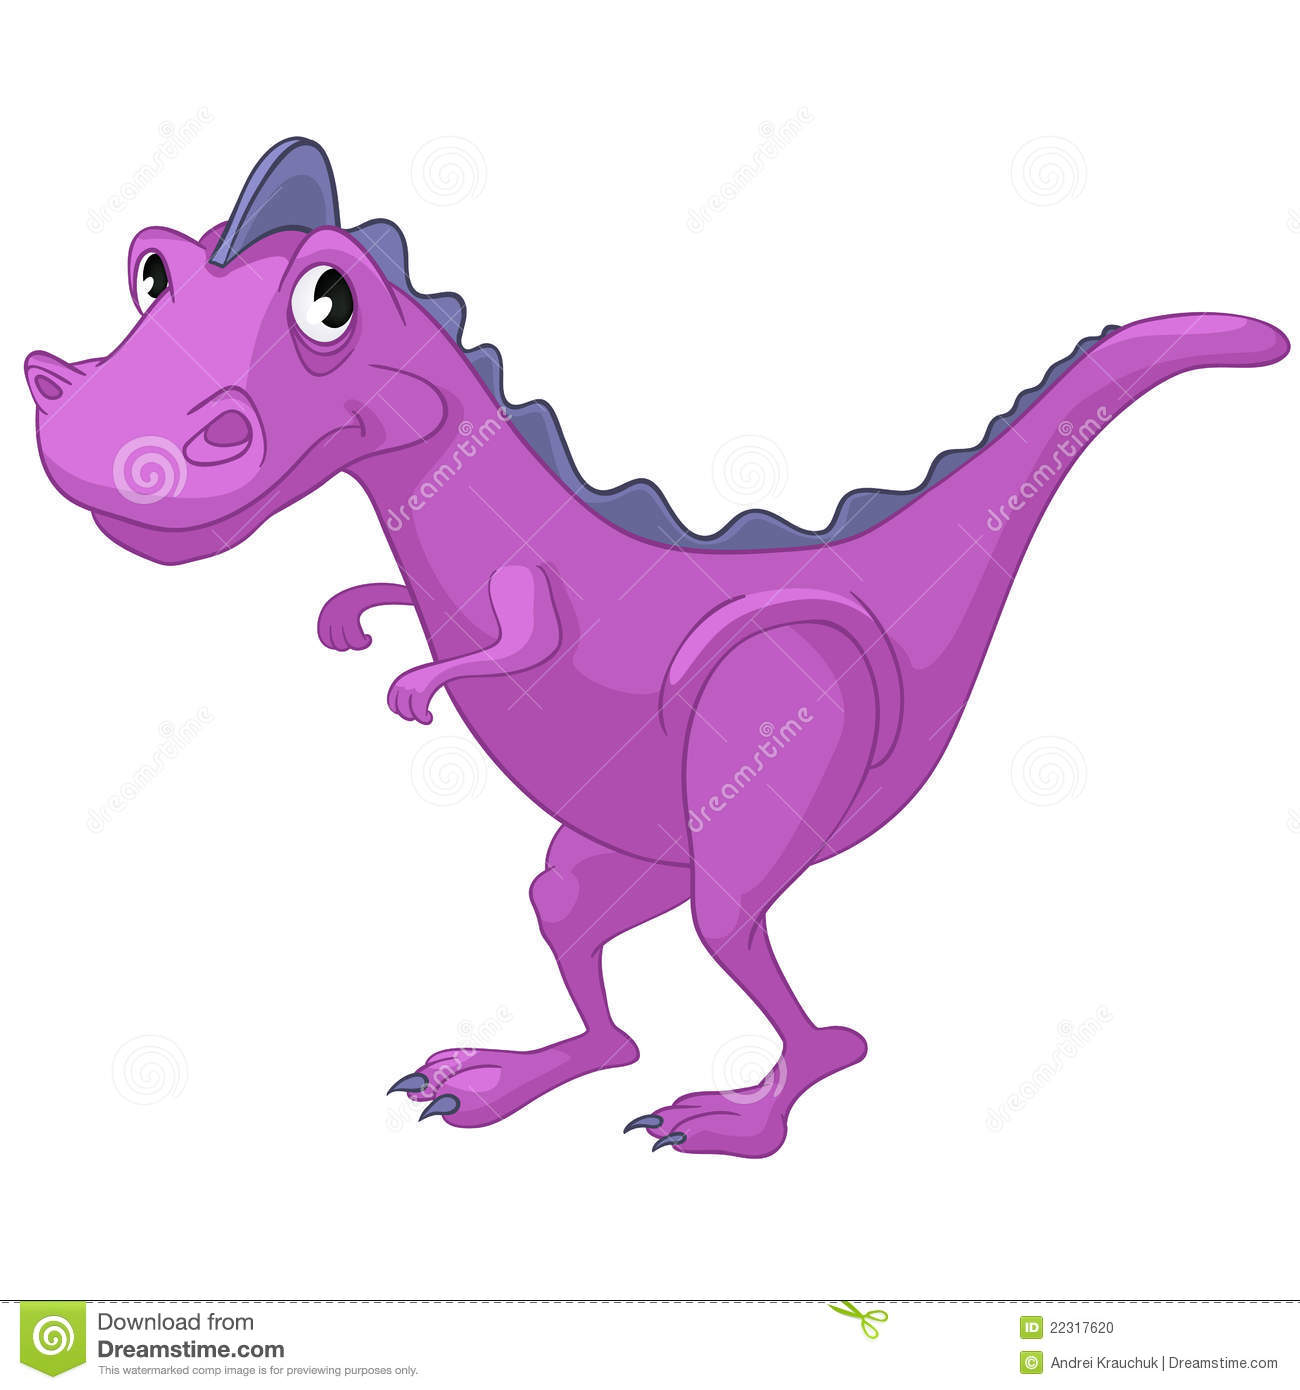 More similar stock images of ` Cartoon Character Dino `